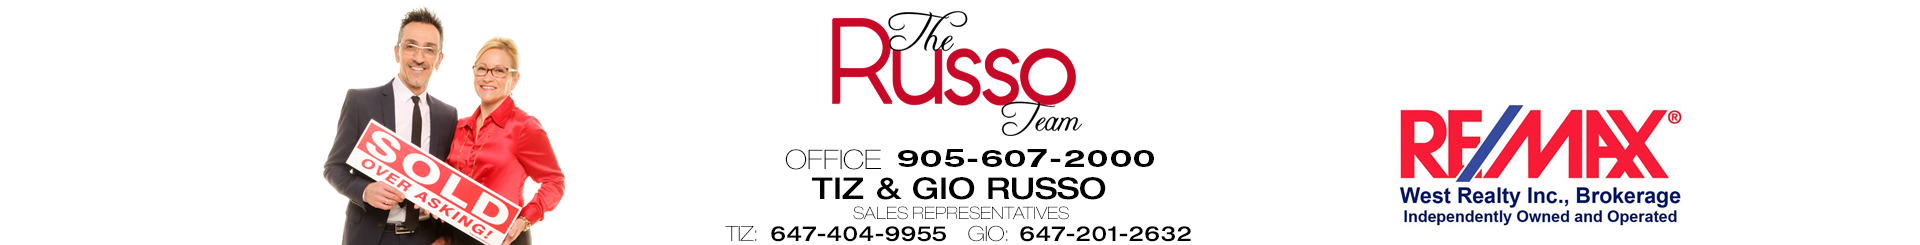 Tiziana Russo, Salesperson of REMAX West Realty